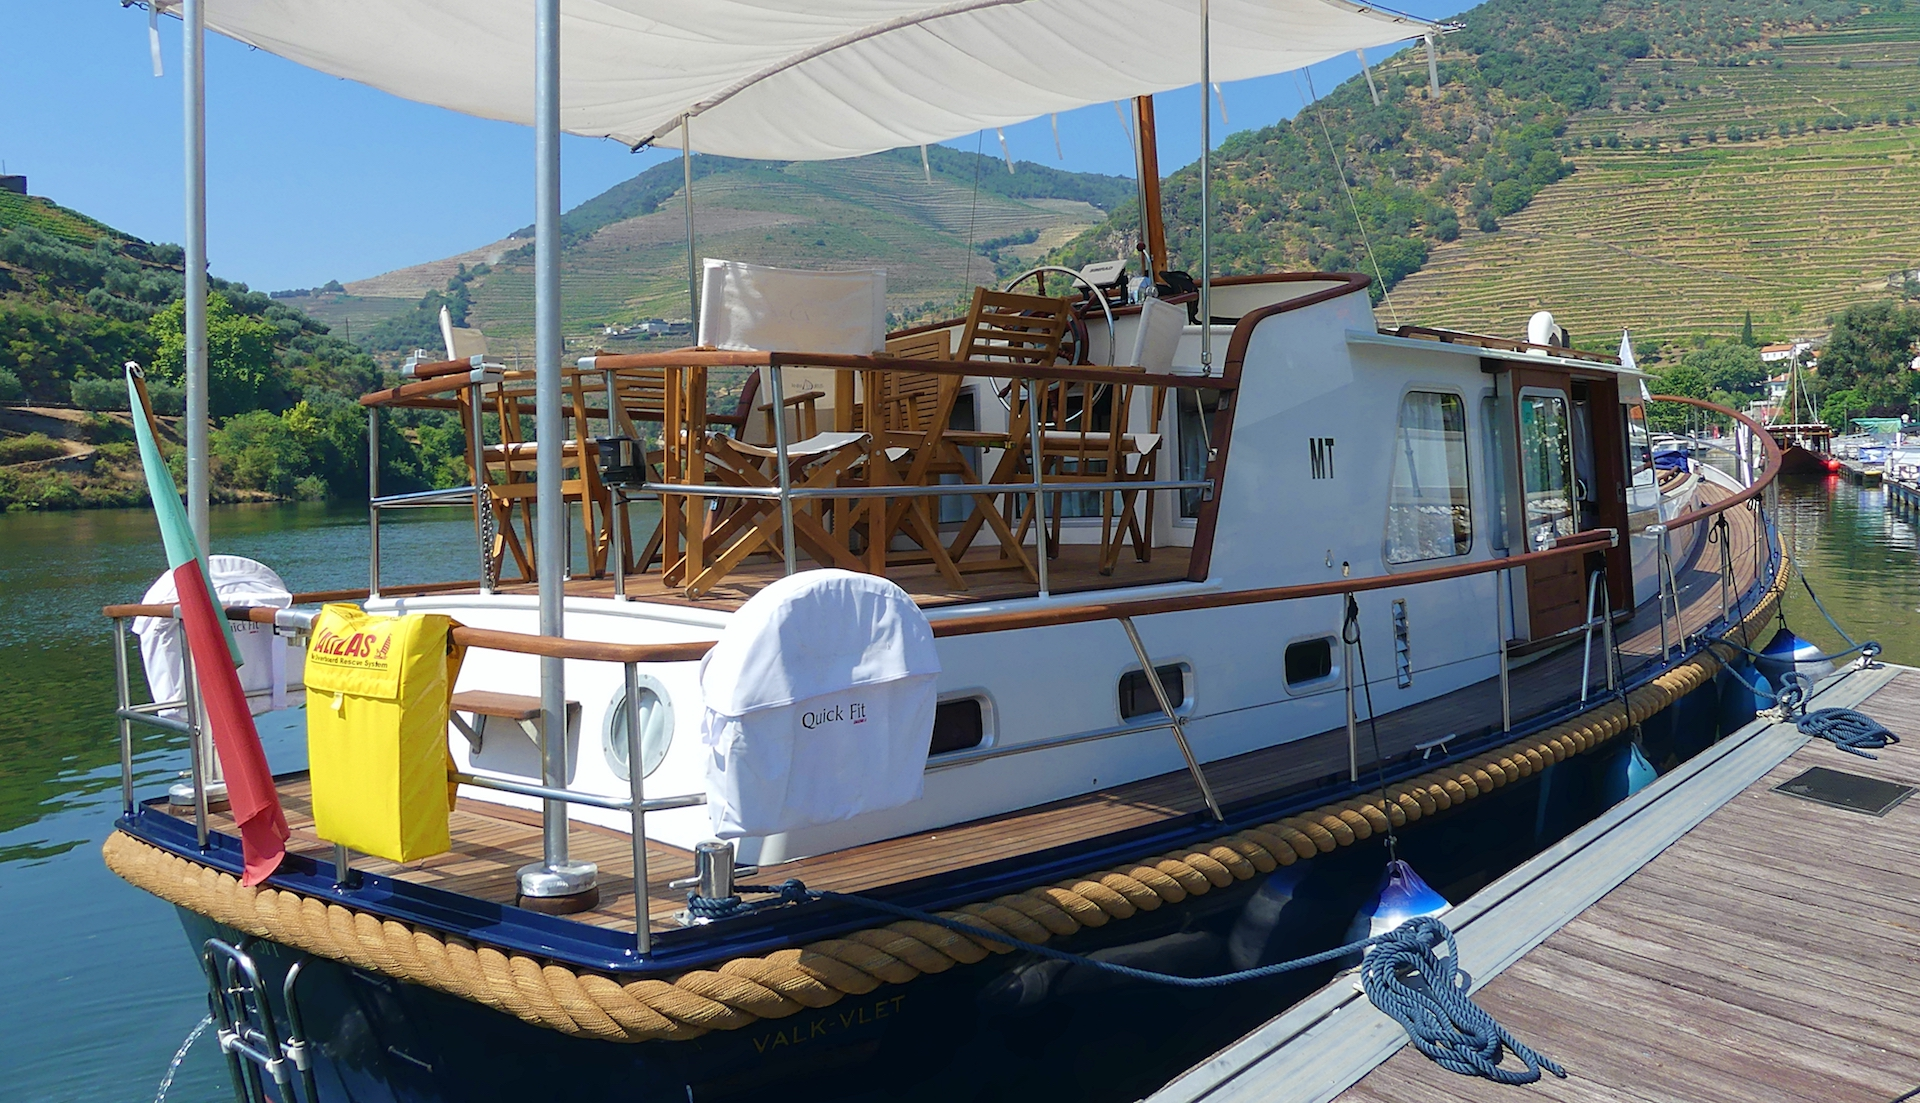 Come on board the wooden boat in Pinhão